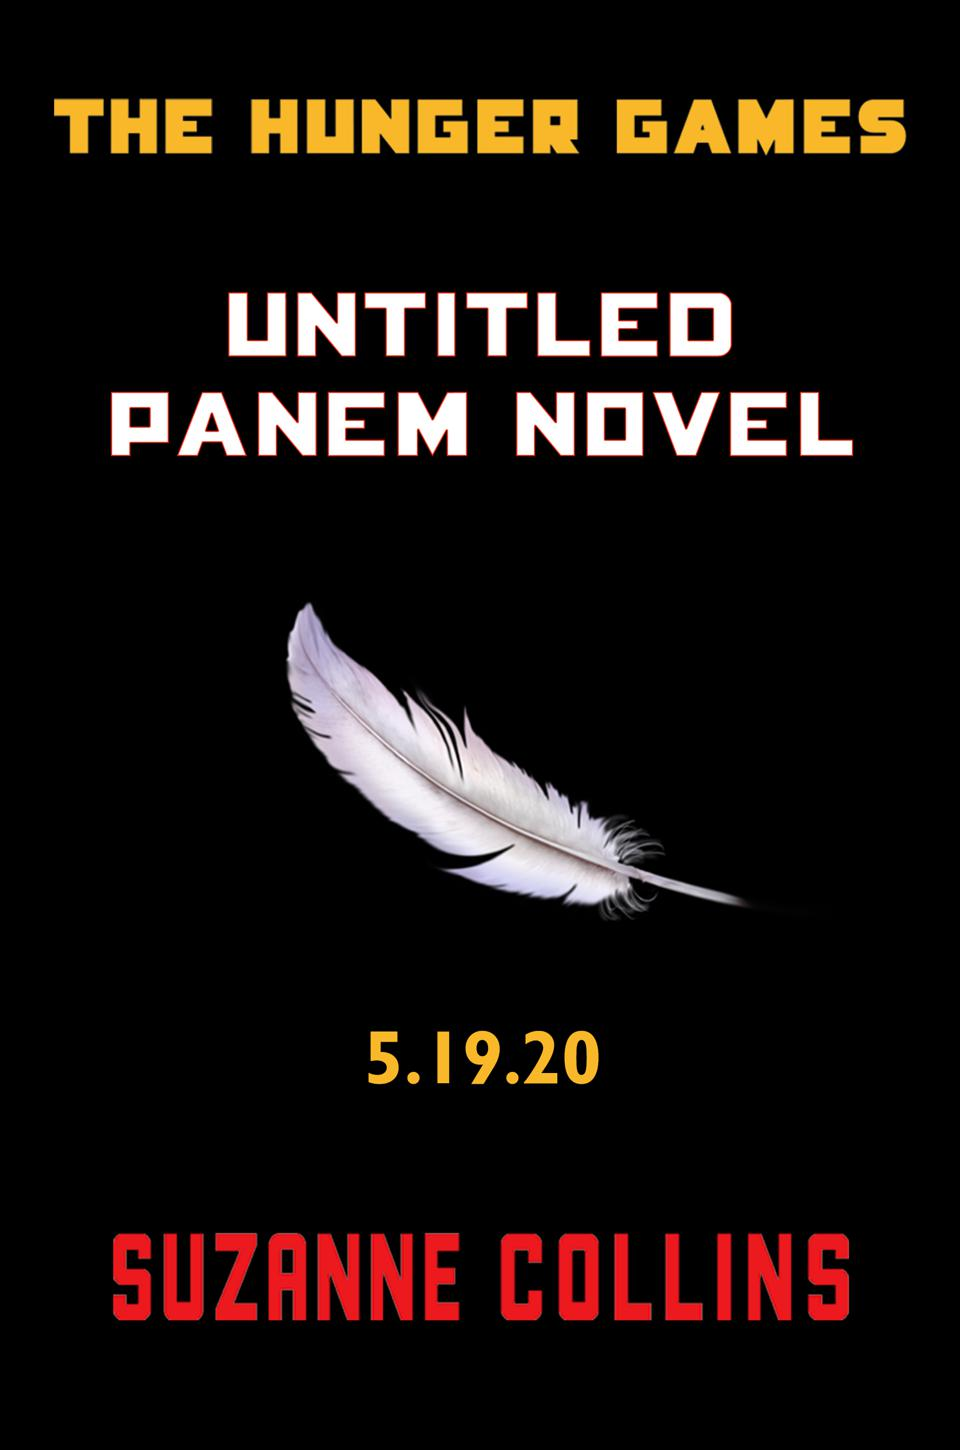 New Suzanne Collins Prequel Novel In The Hunger Games Series